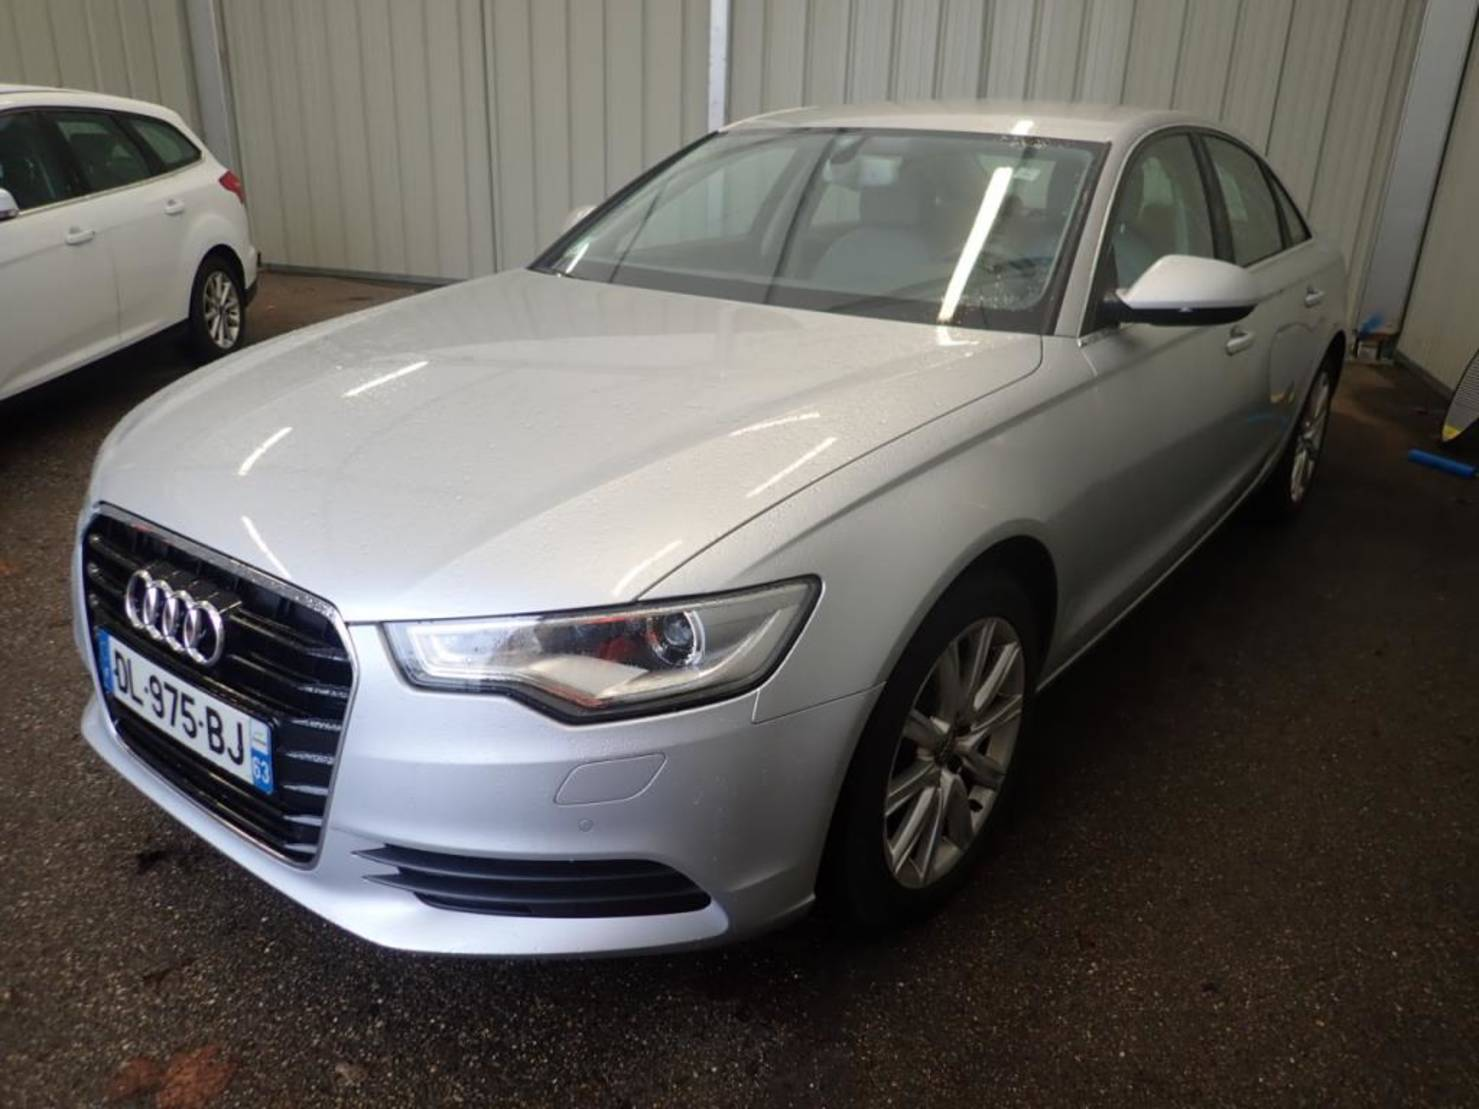 Audi A6 2.0 TDI DPF ultra 190, Ambition Luxe S Tronic A detail1